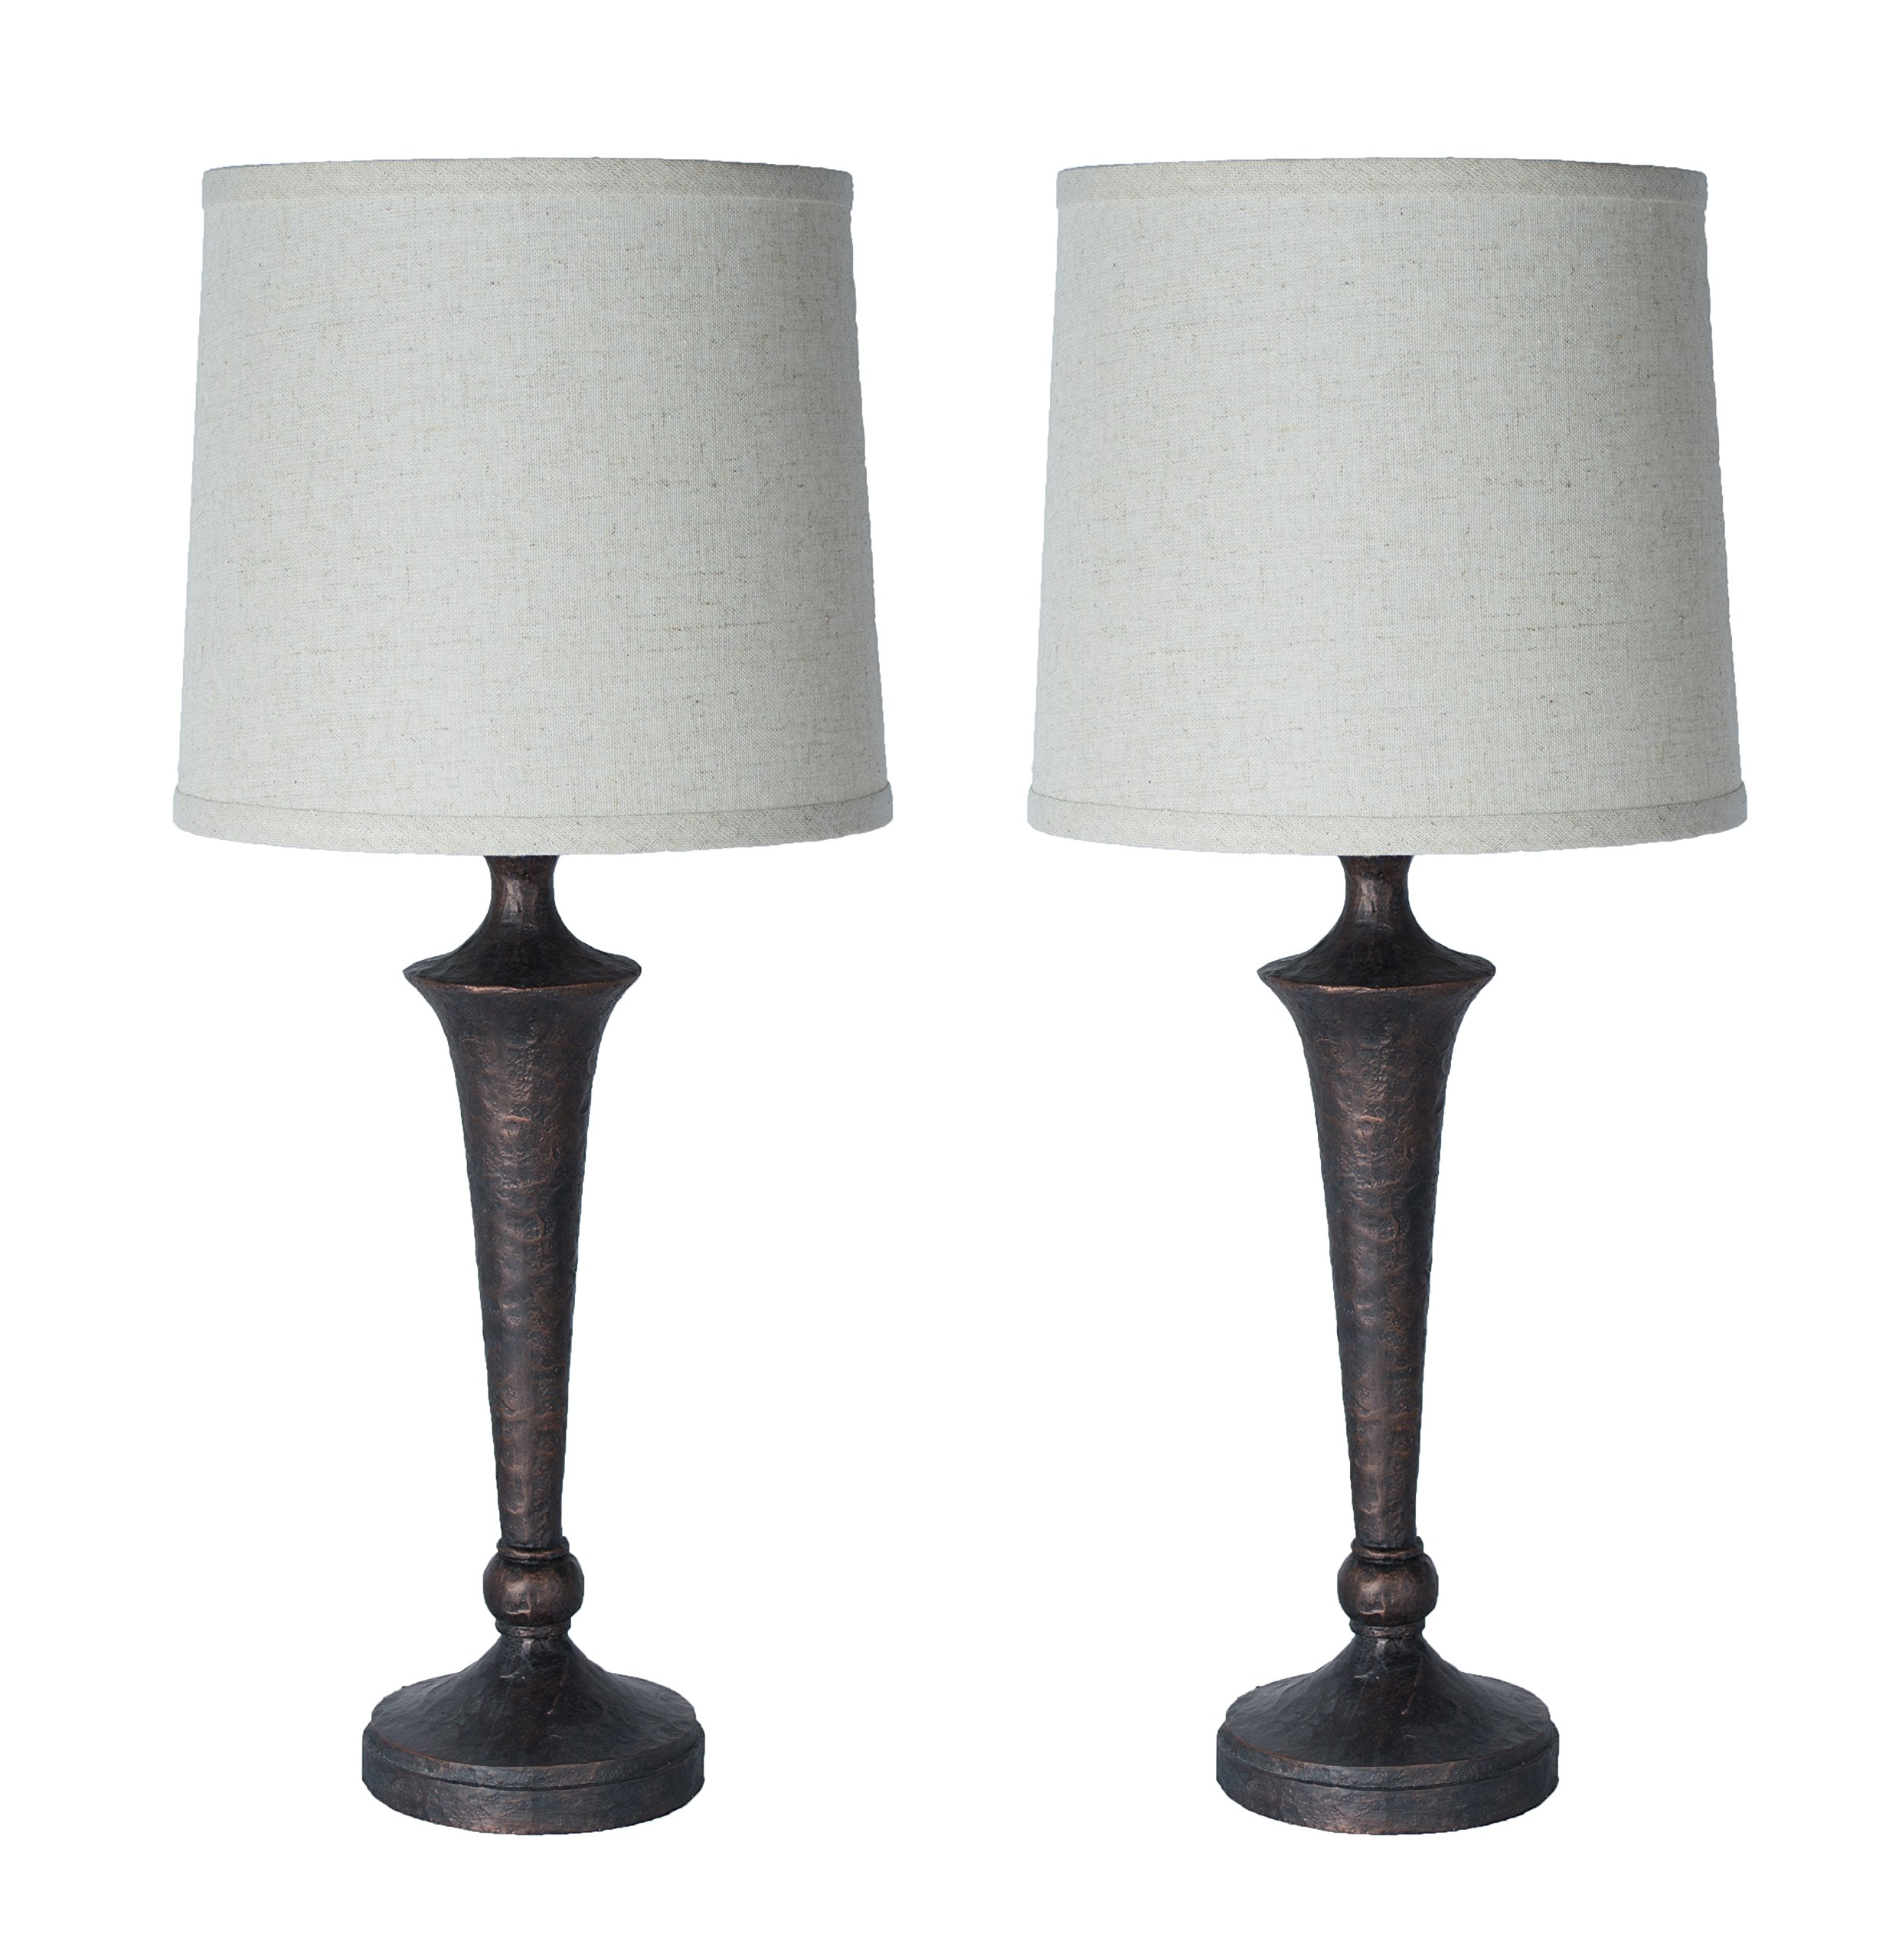 Urbanest Set of 2 Jacob Table Lamps, Paris Bronze